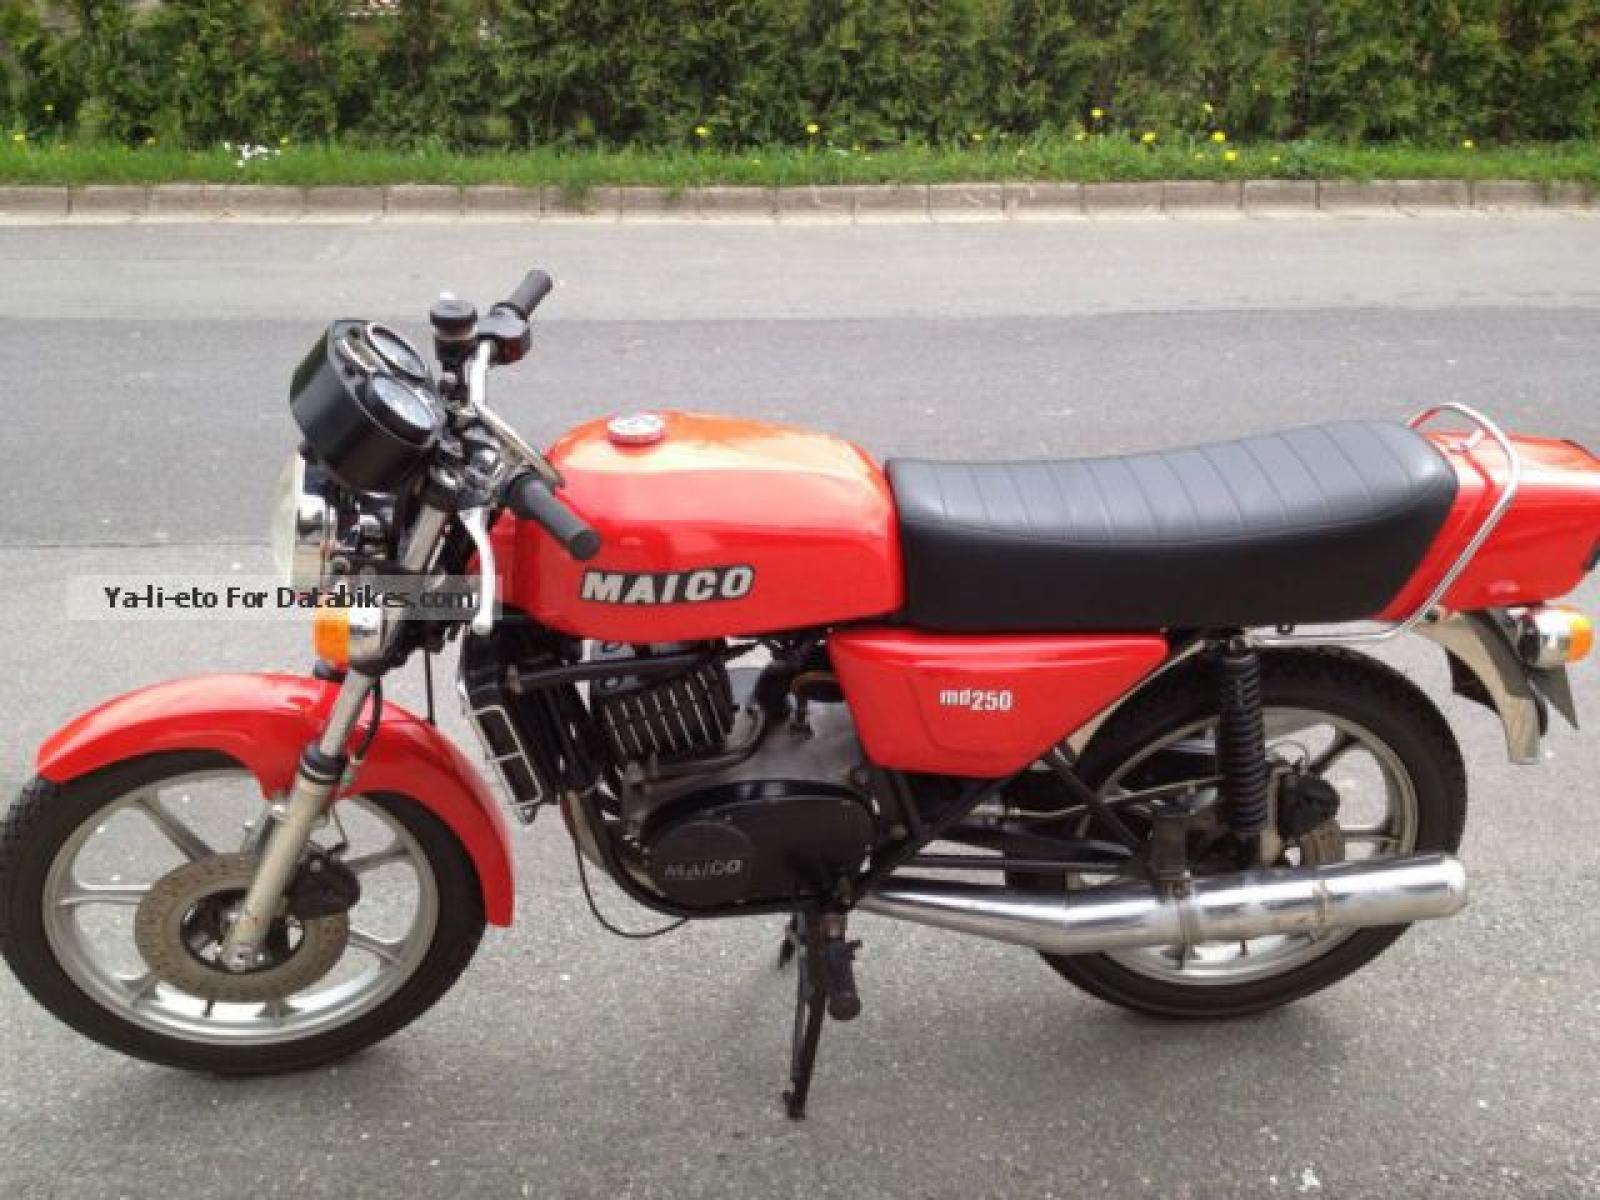 Maico MD 250 1971 images #102821